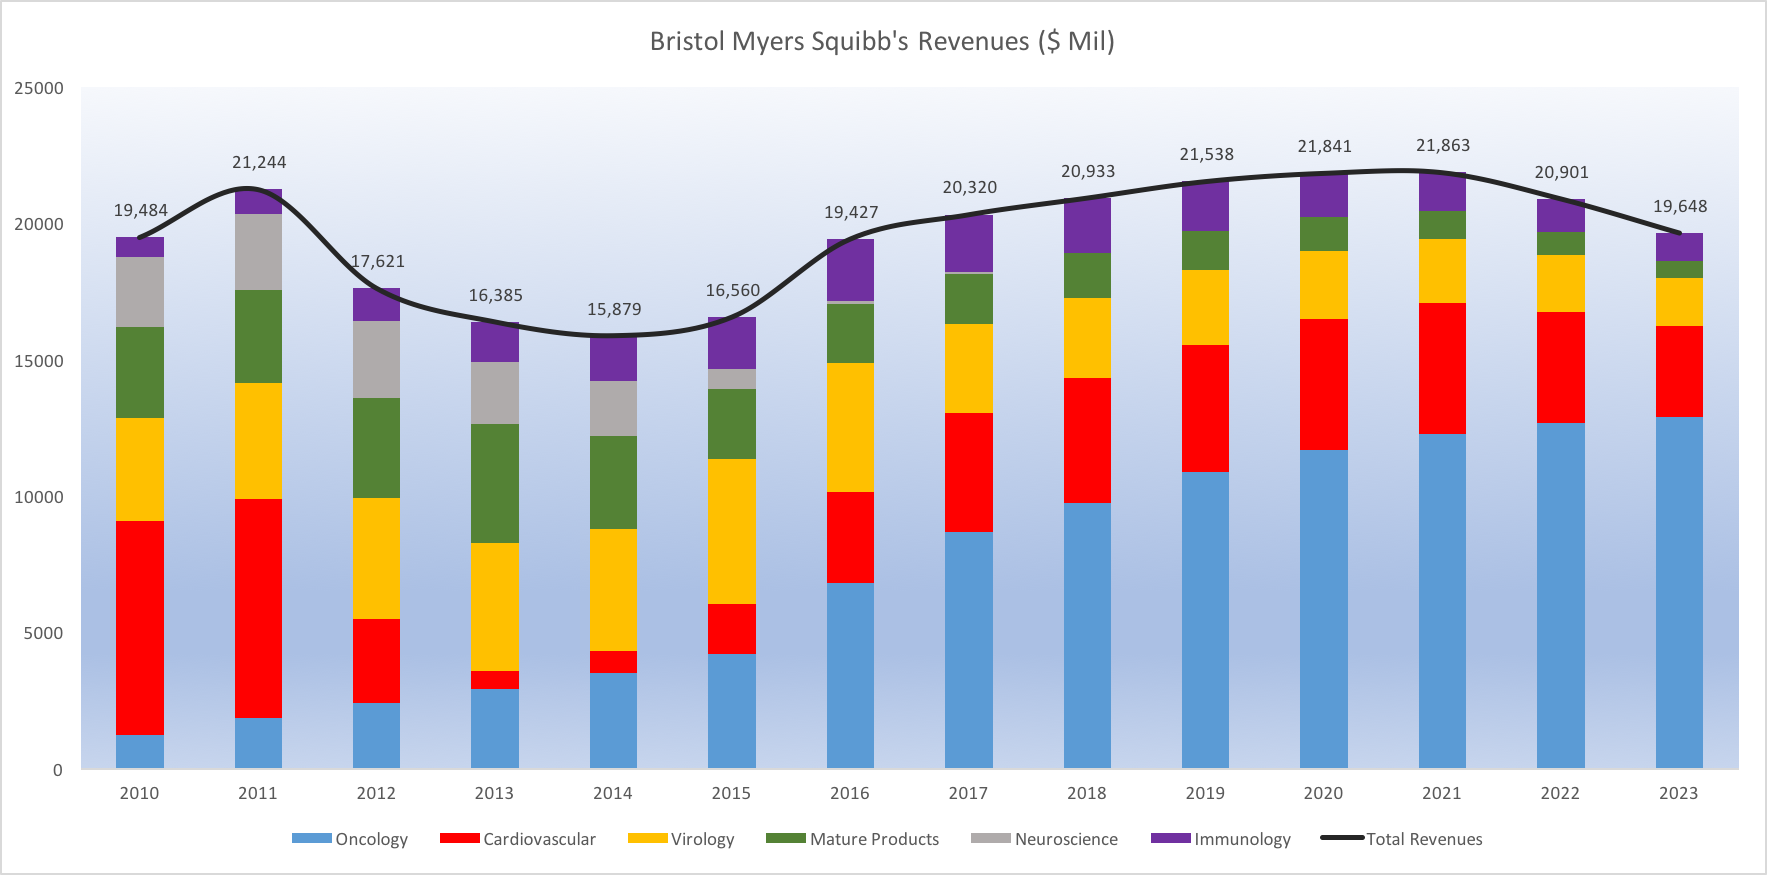 Why Opdivo Is The Most Important Driver For Bristol Myers Squibbs